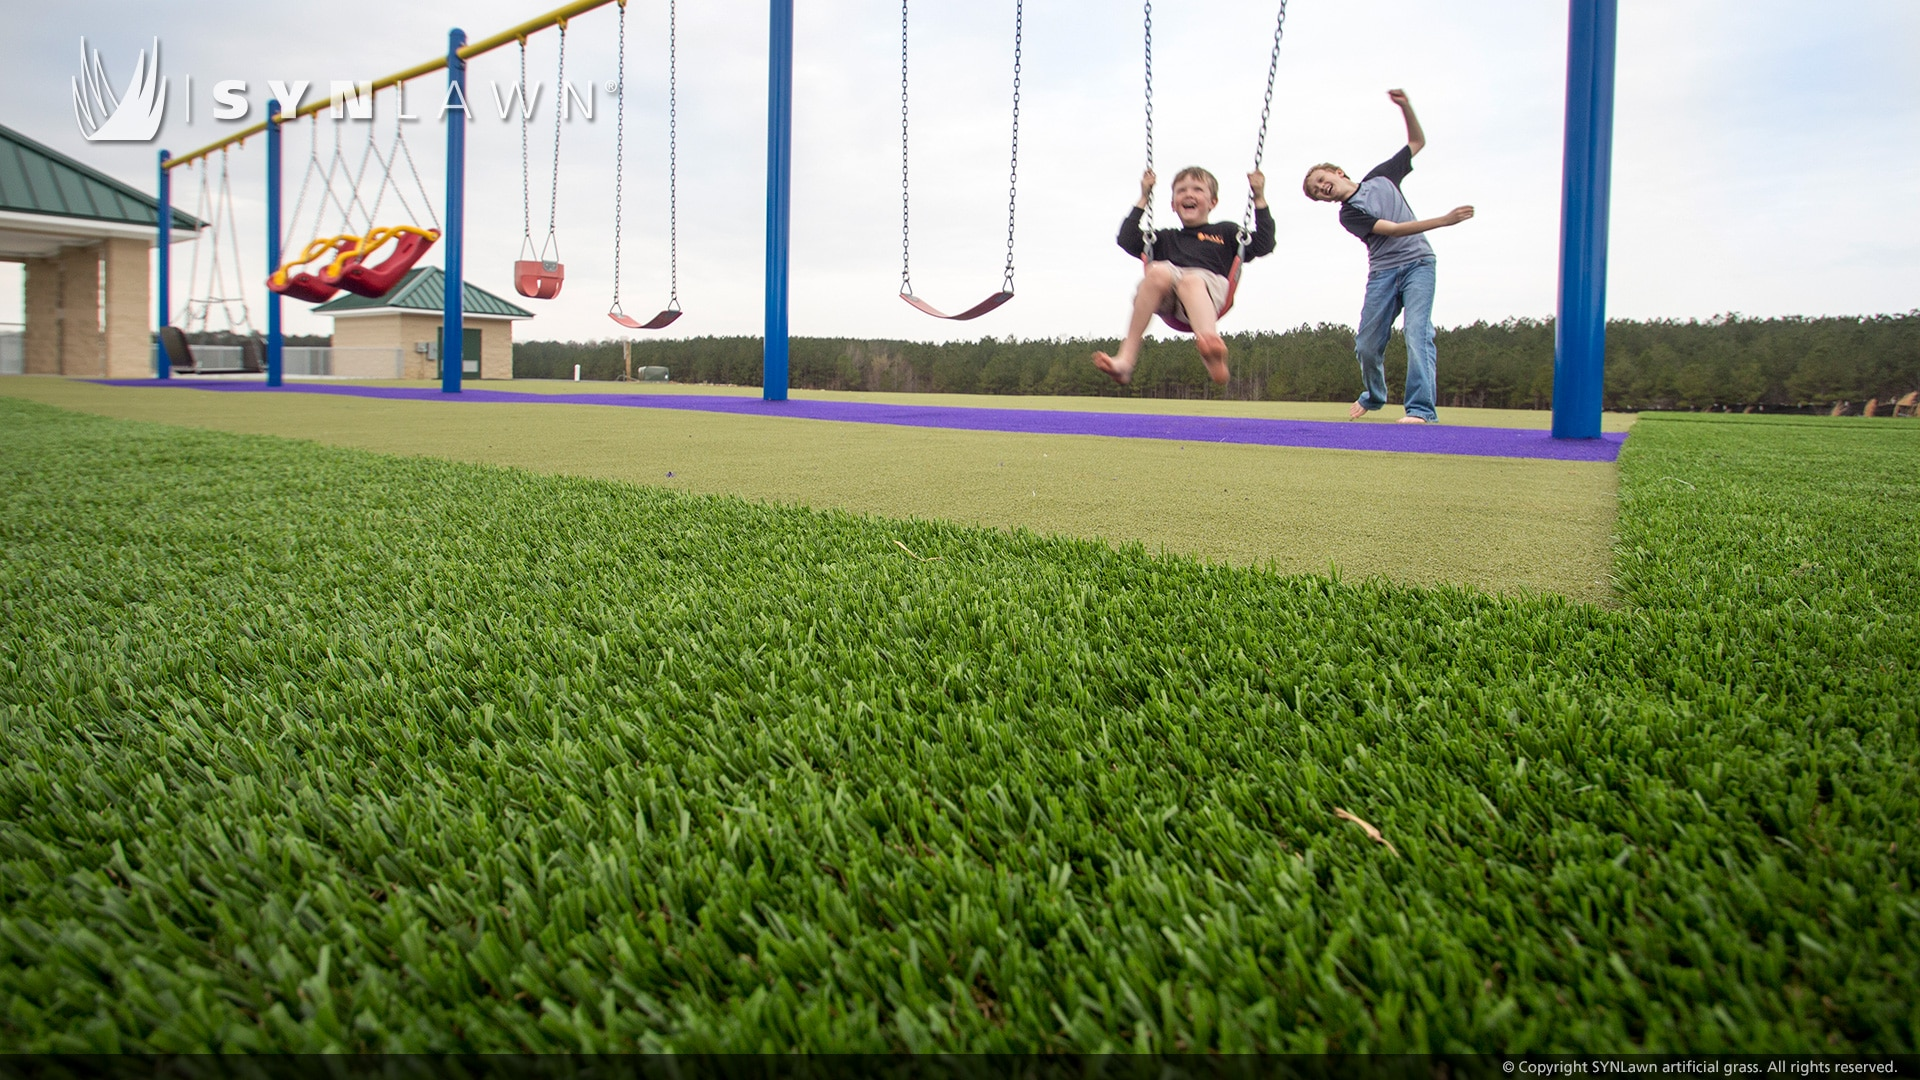 image of synlawn playground turf at peeples memorial play park